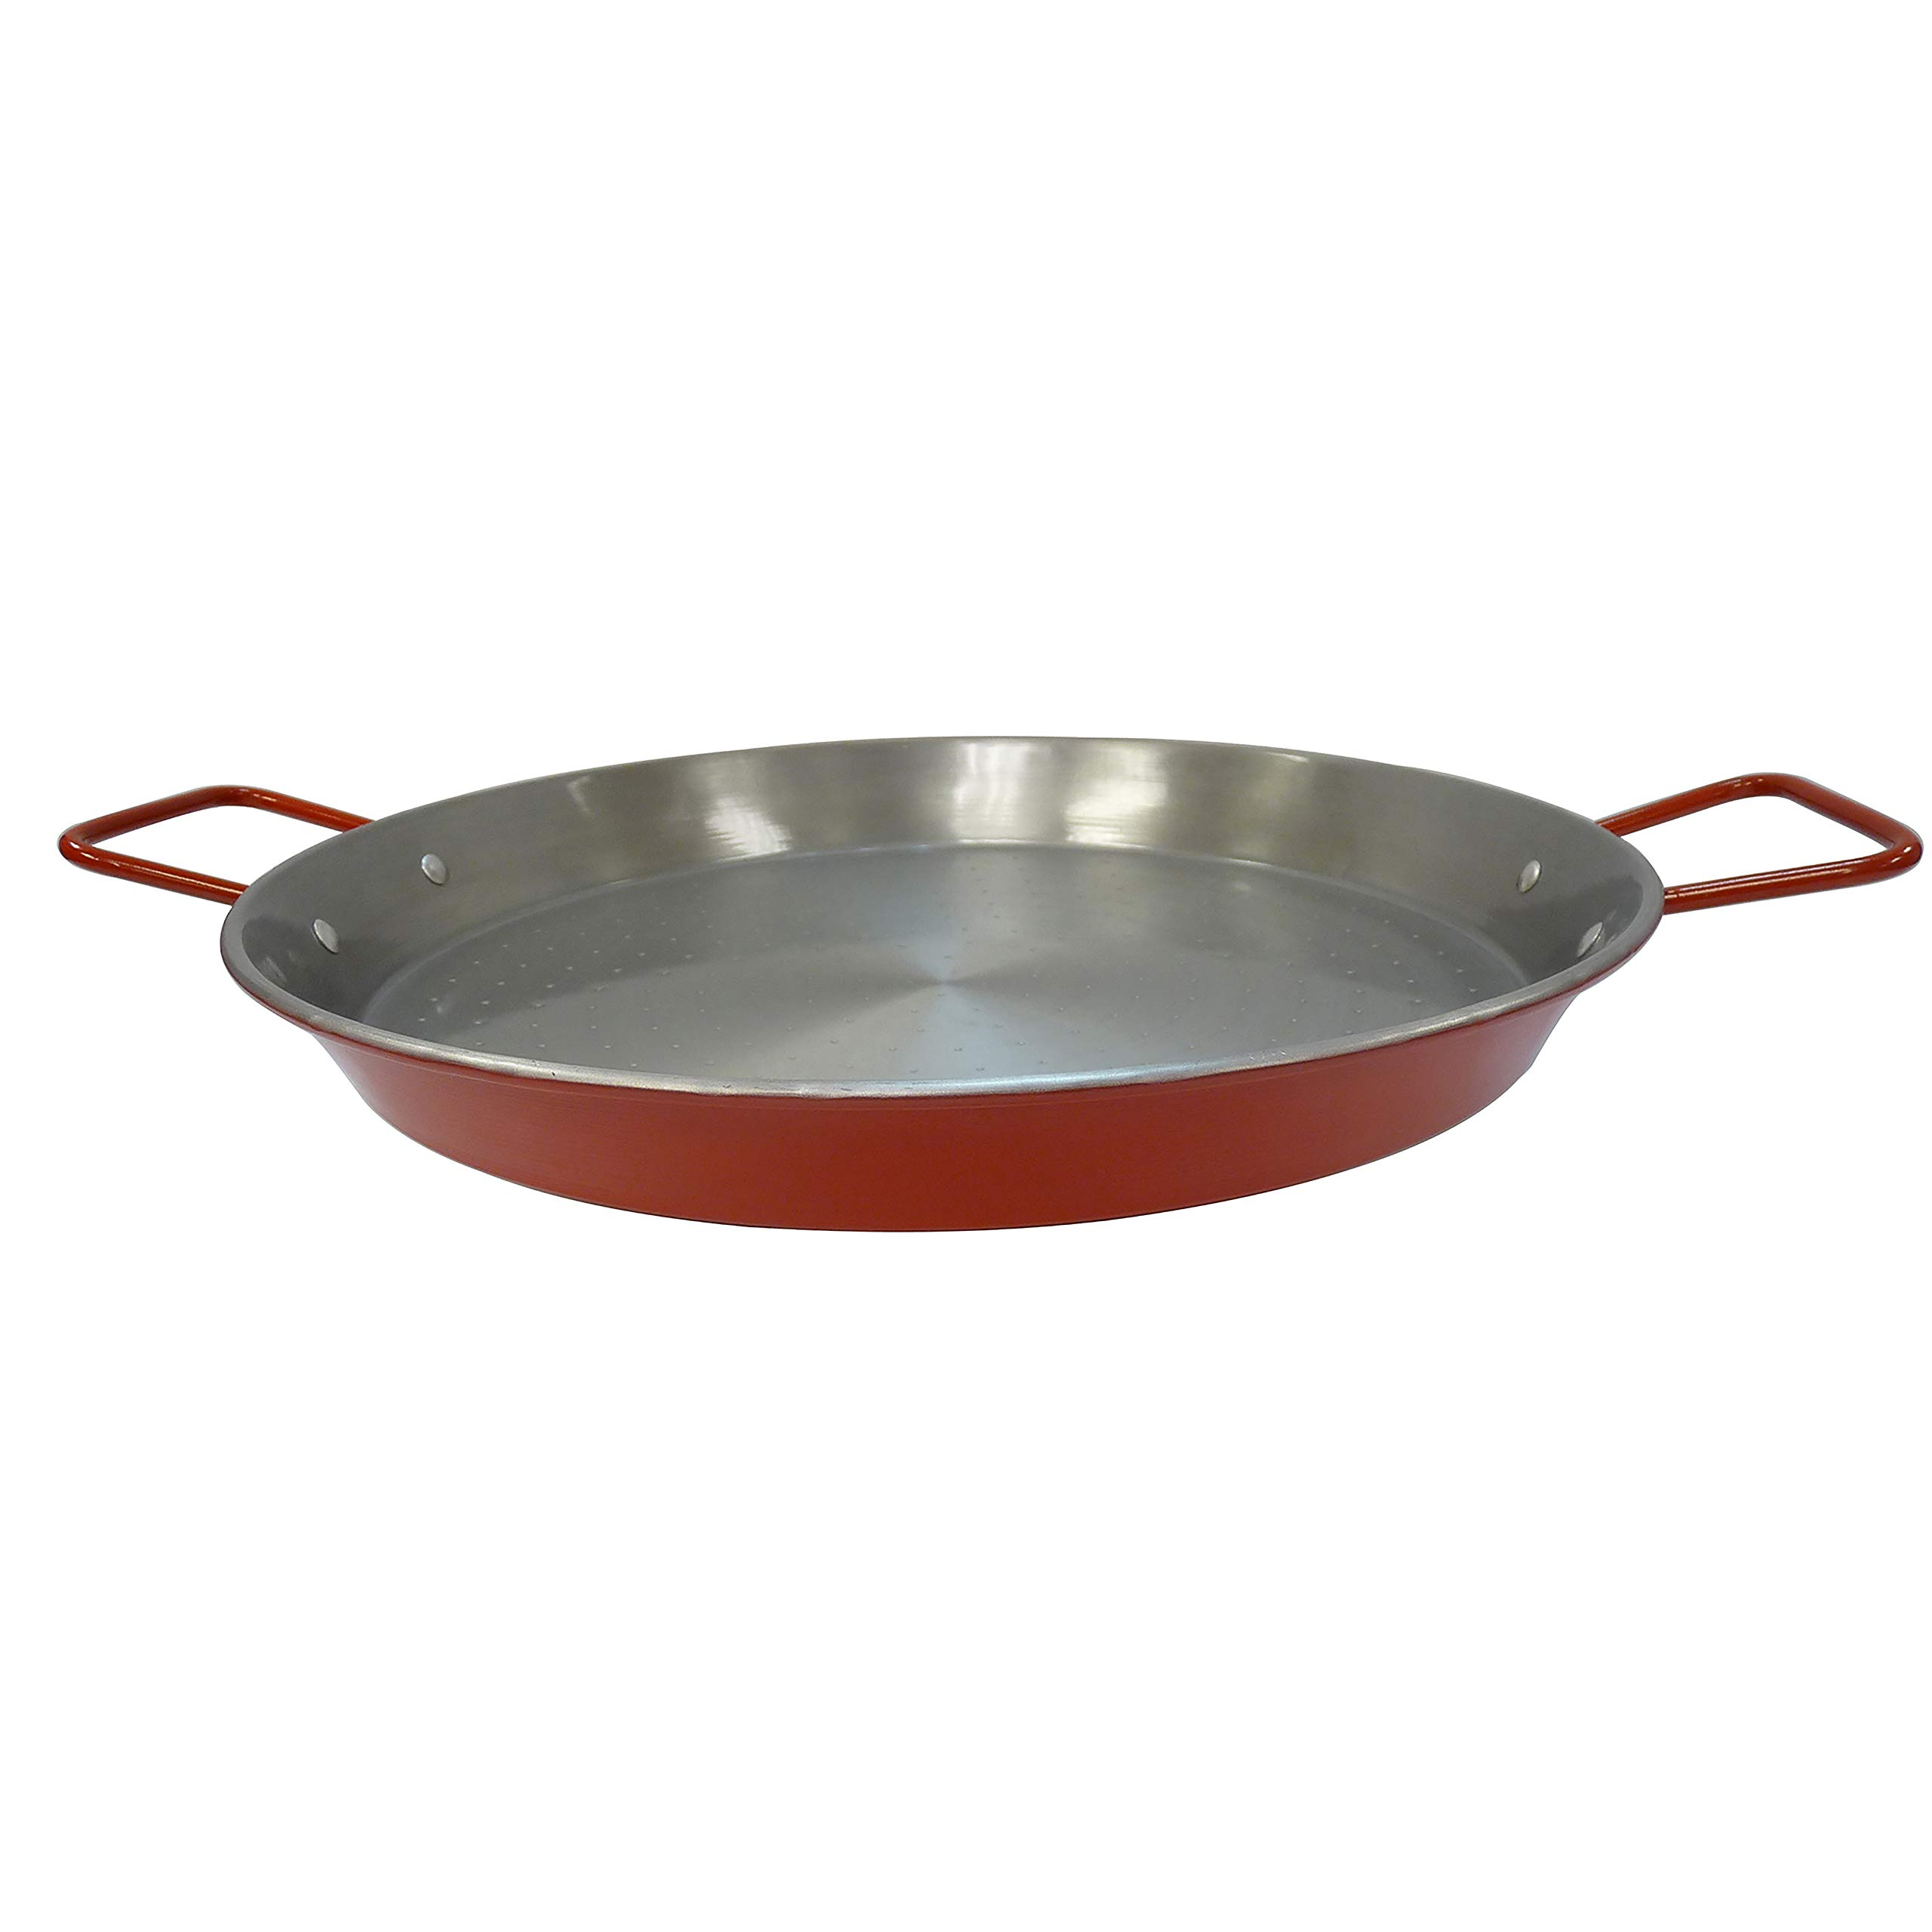 IMUSA USA CAR-52031T NonCoated Aluminized Paella Pan 15-Inch, Red, 15 Inch by Imusa